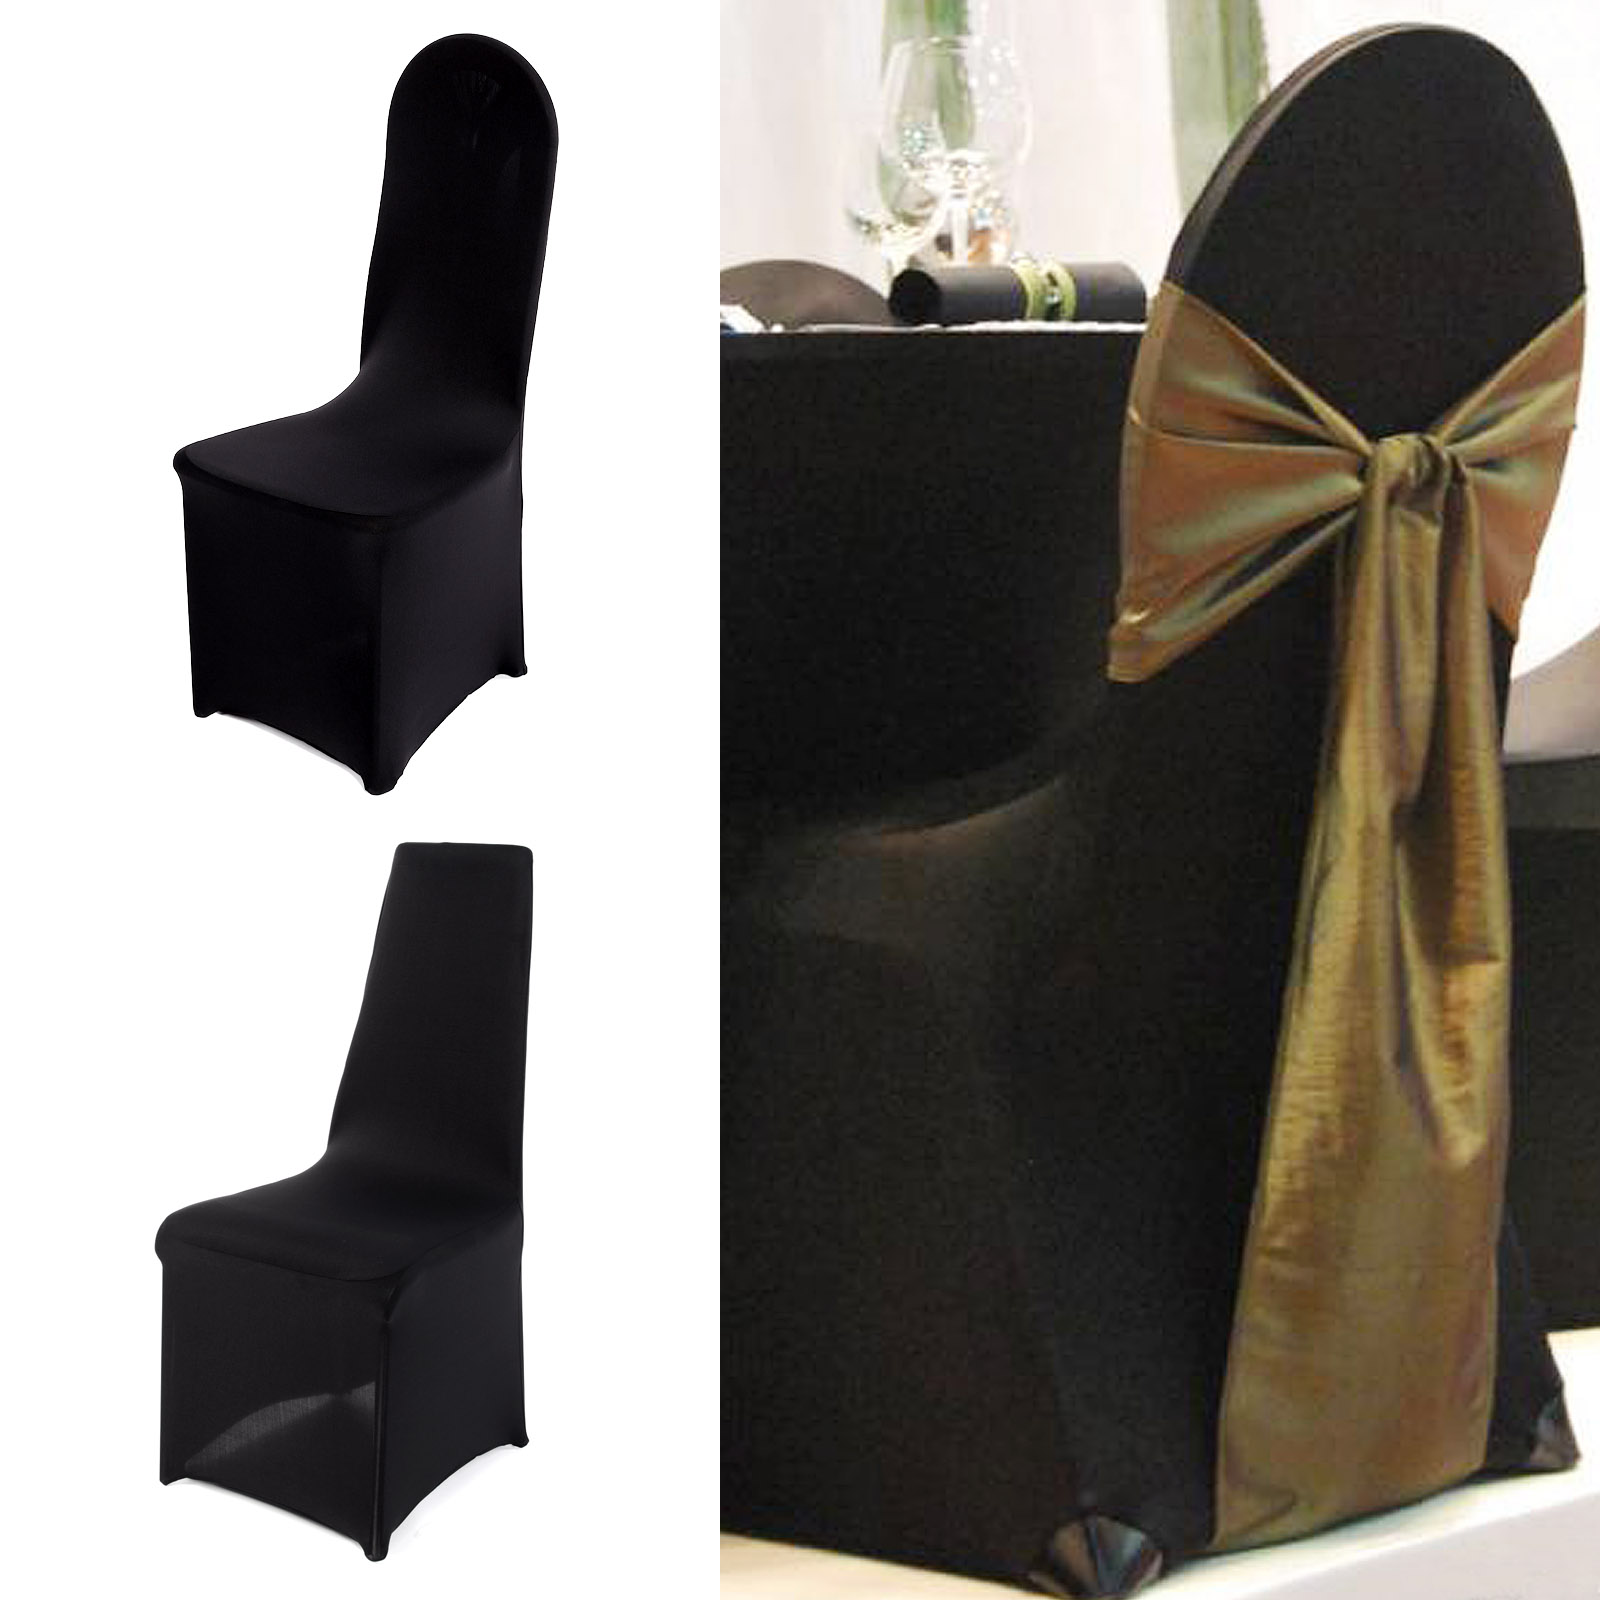 SPANDEX CHAIR COVER LYRCA COVERS BANQUET WEDDING RECEPTION PARTY FLAT FRONTED